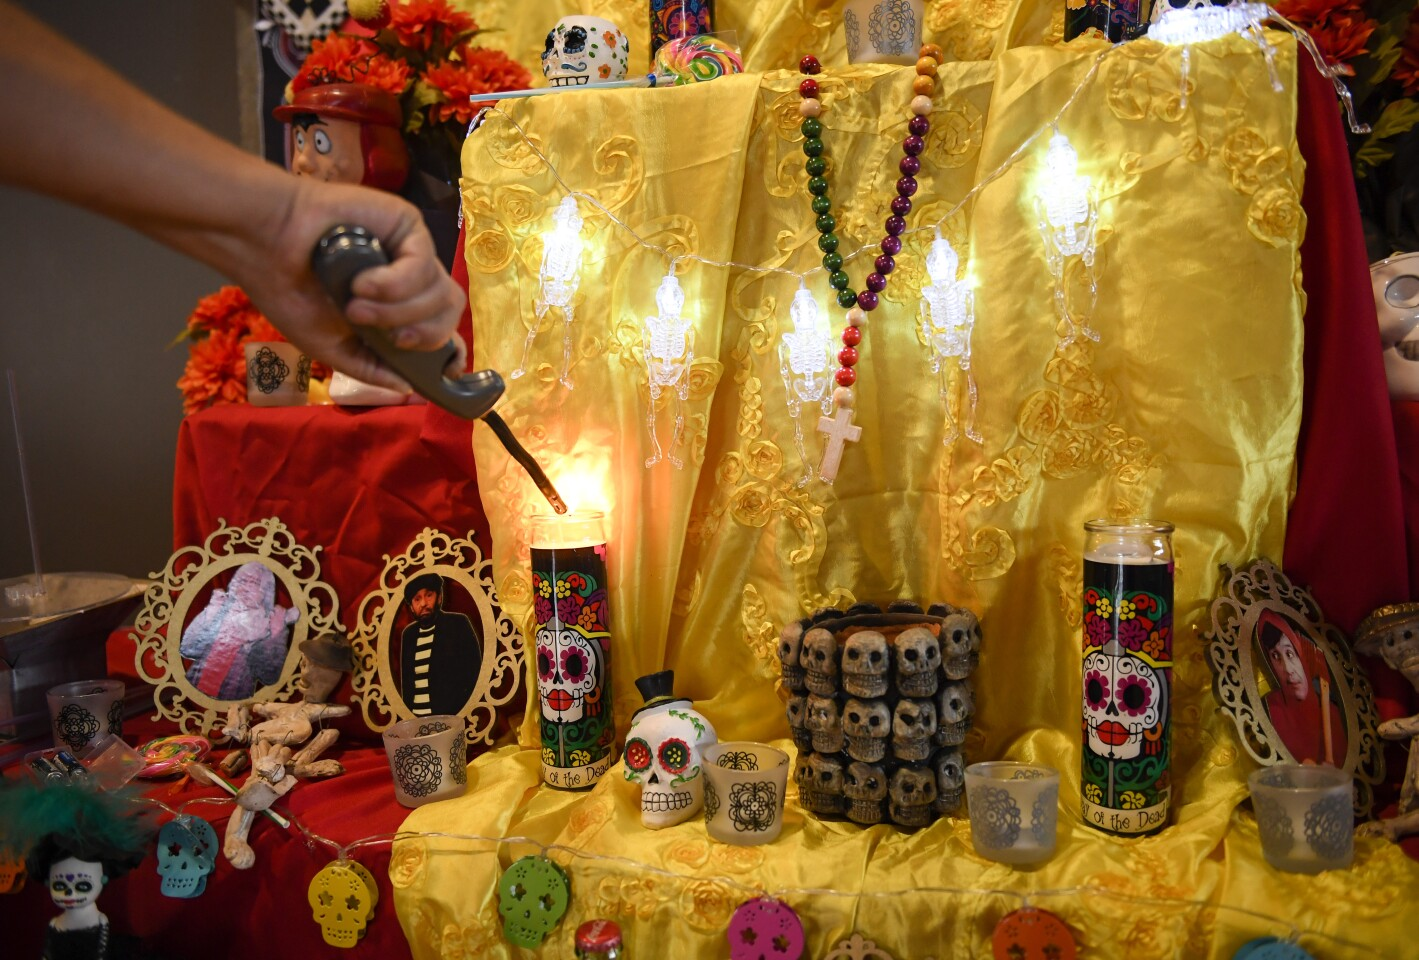 A completed Day of the Dead altar is displayed at the Sherman Heights Community Center Friday, Oct. 23, 2020 in San Diego. (Photo by Denis Poroy)